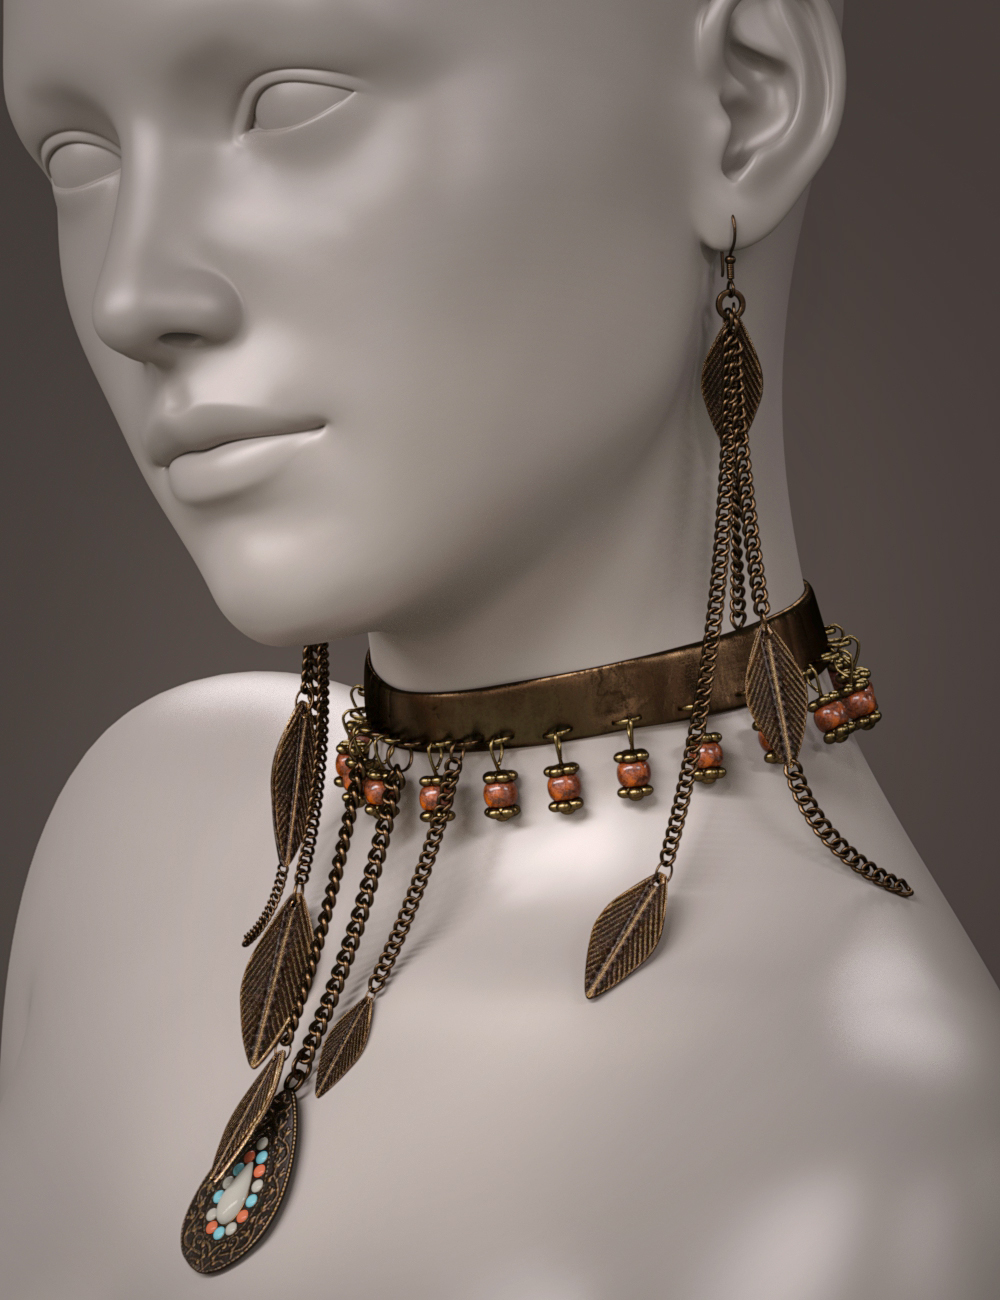 ES Pepper Jewelry for Genesis 3 and 8 Female(s) by: EyeStorm, 3D Models by Daz 3D